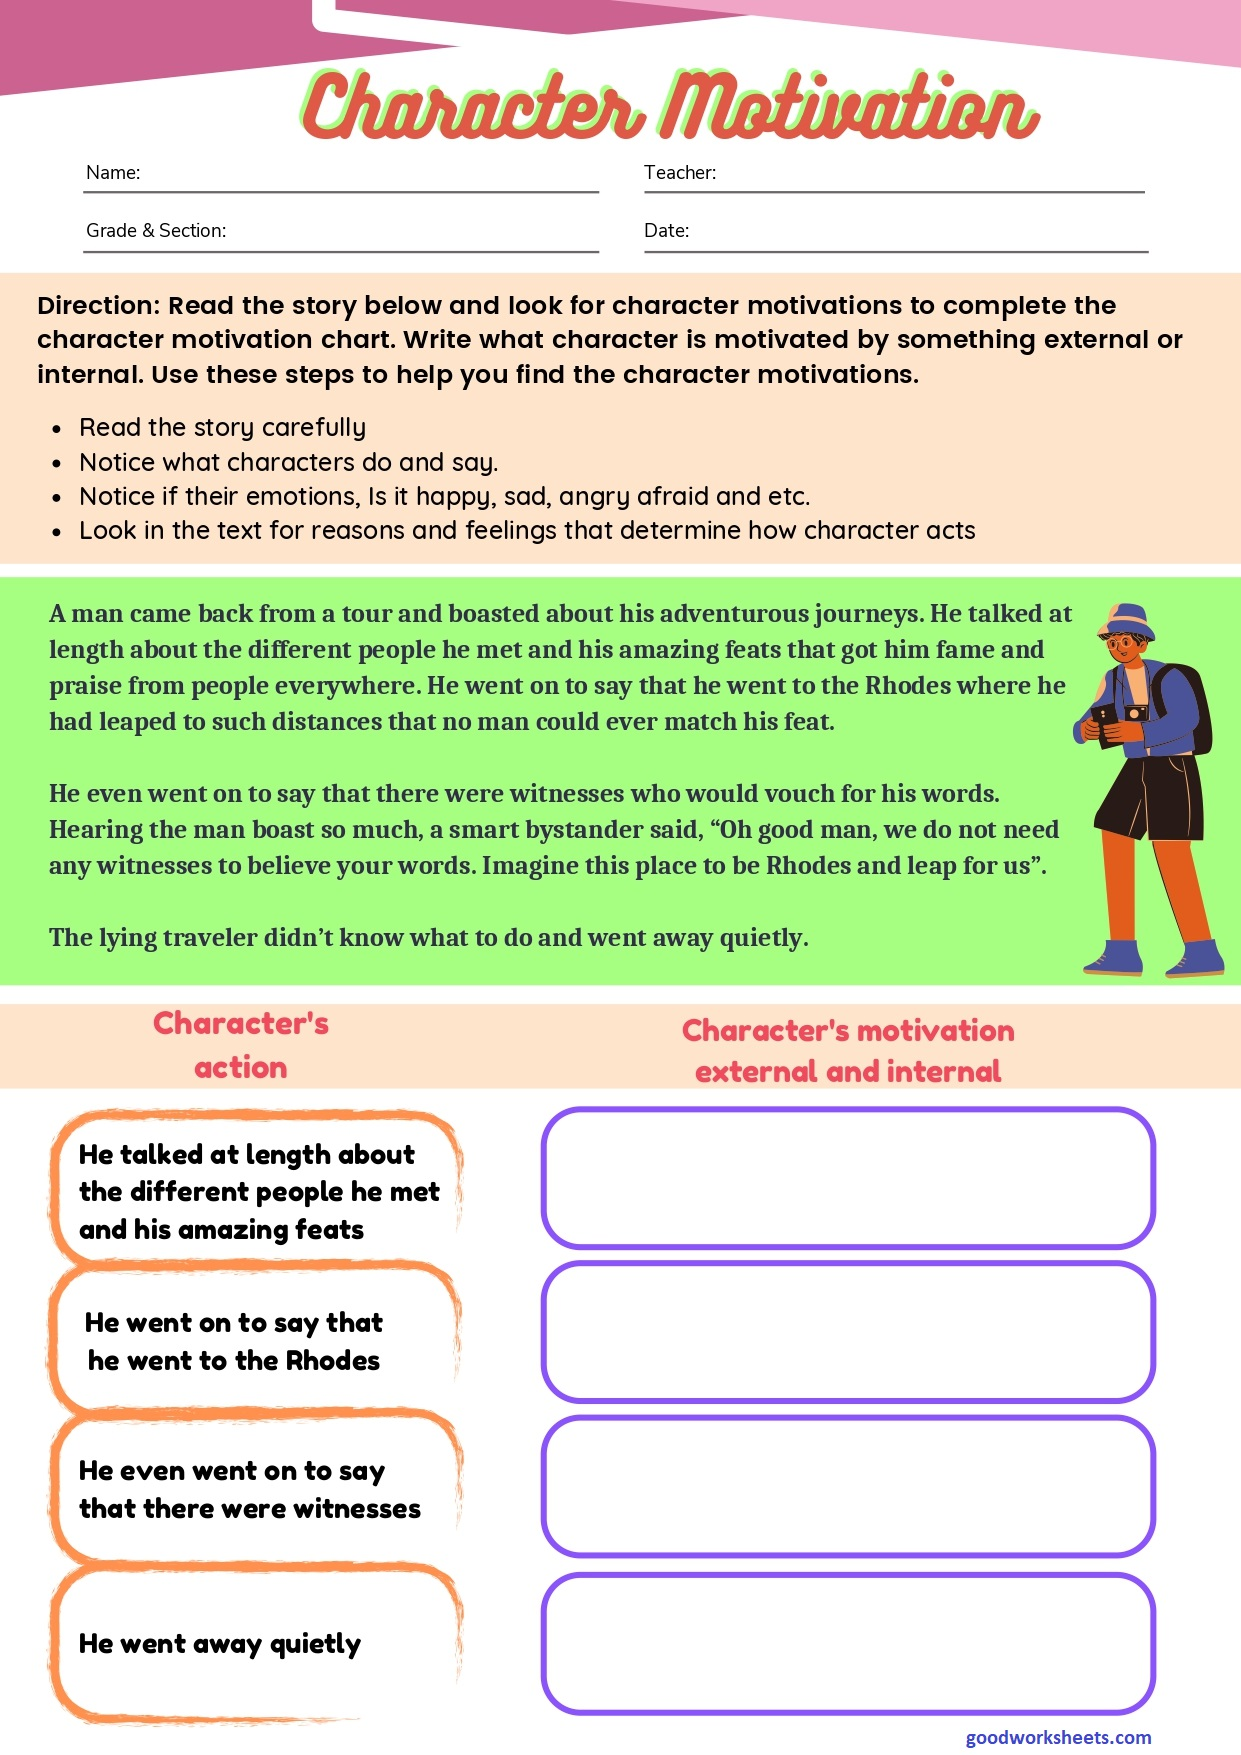 Character Motivation Worksheets with Answer Key